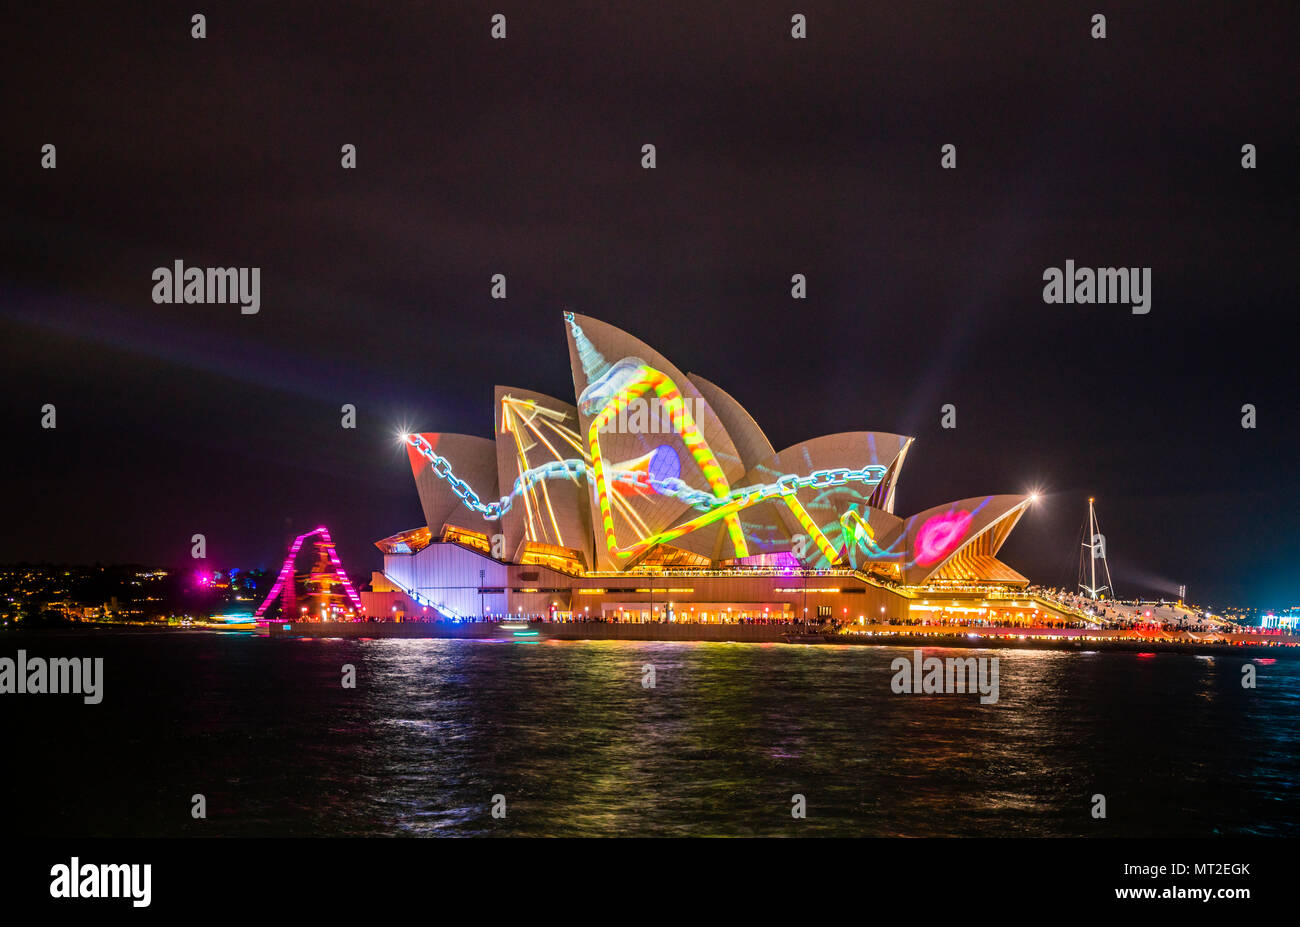 kinetic digitul sculptures designed by Australian artist Jonathan Zawanda, projected an the sails of the Sydney Opera House at Lighting of the Sailes during VIVID 2018, Benelong Point, Sydney Cove, New South Wales, Australia - Stock Image